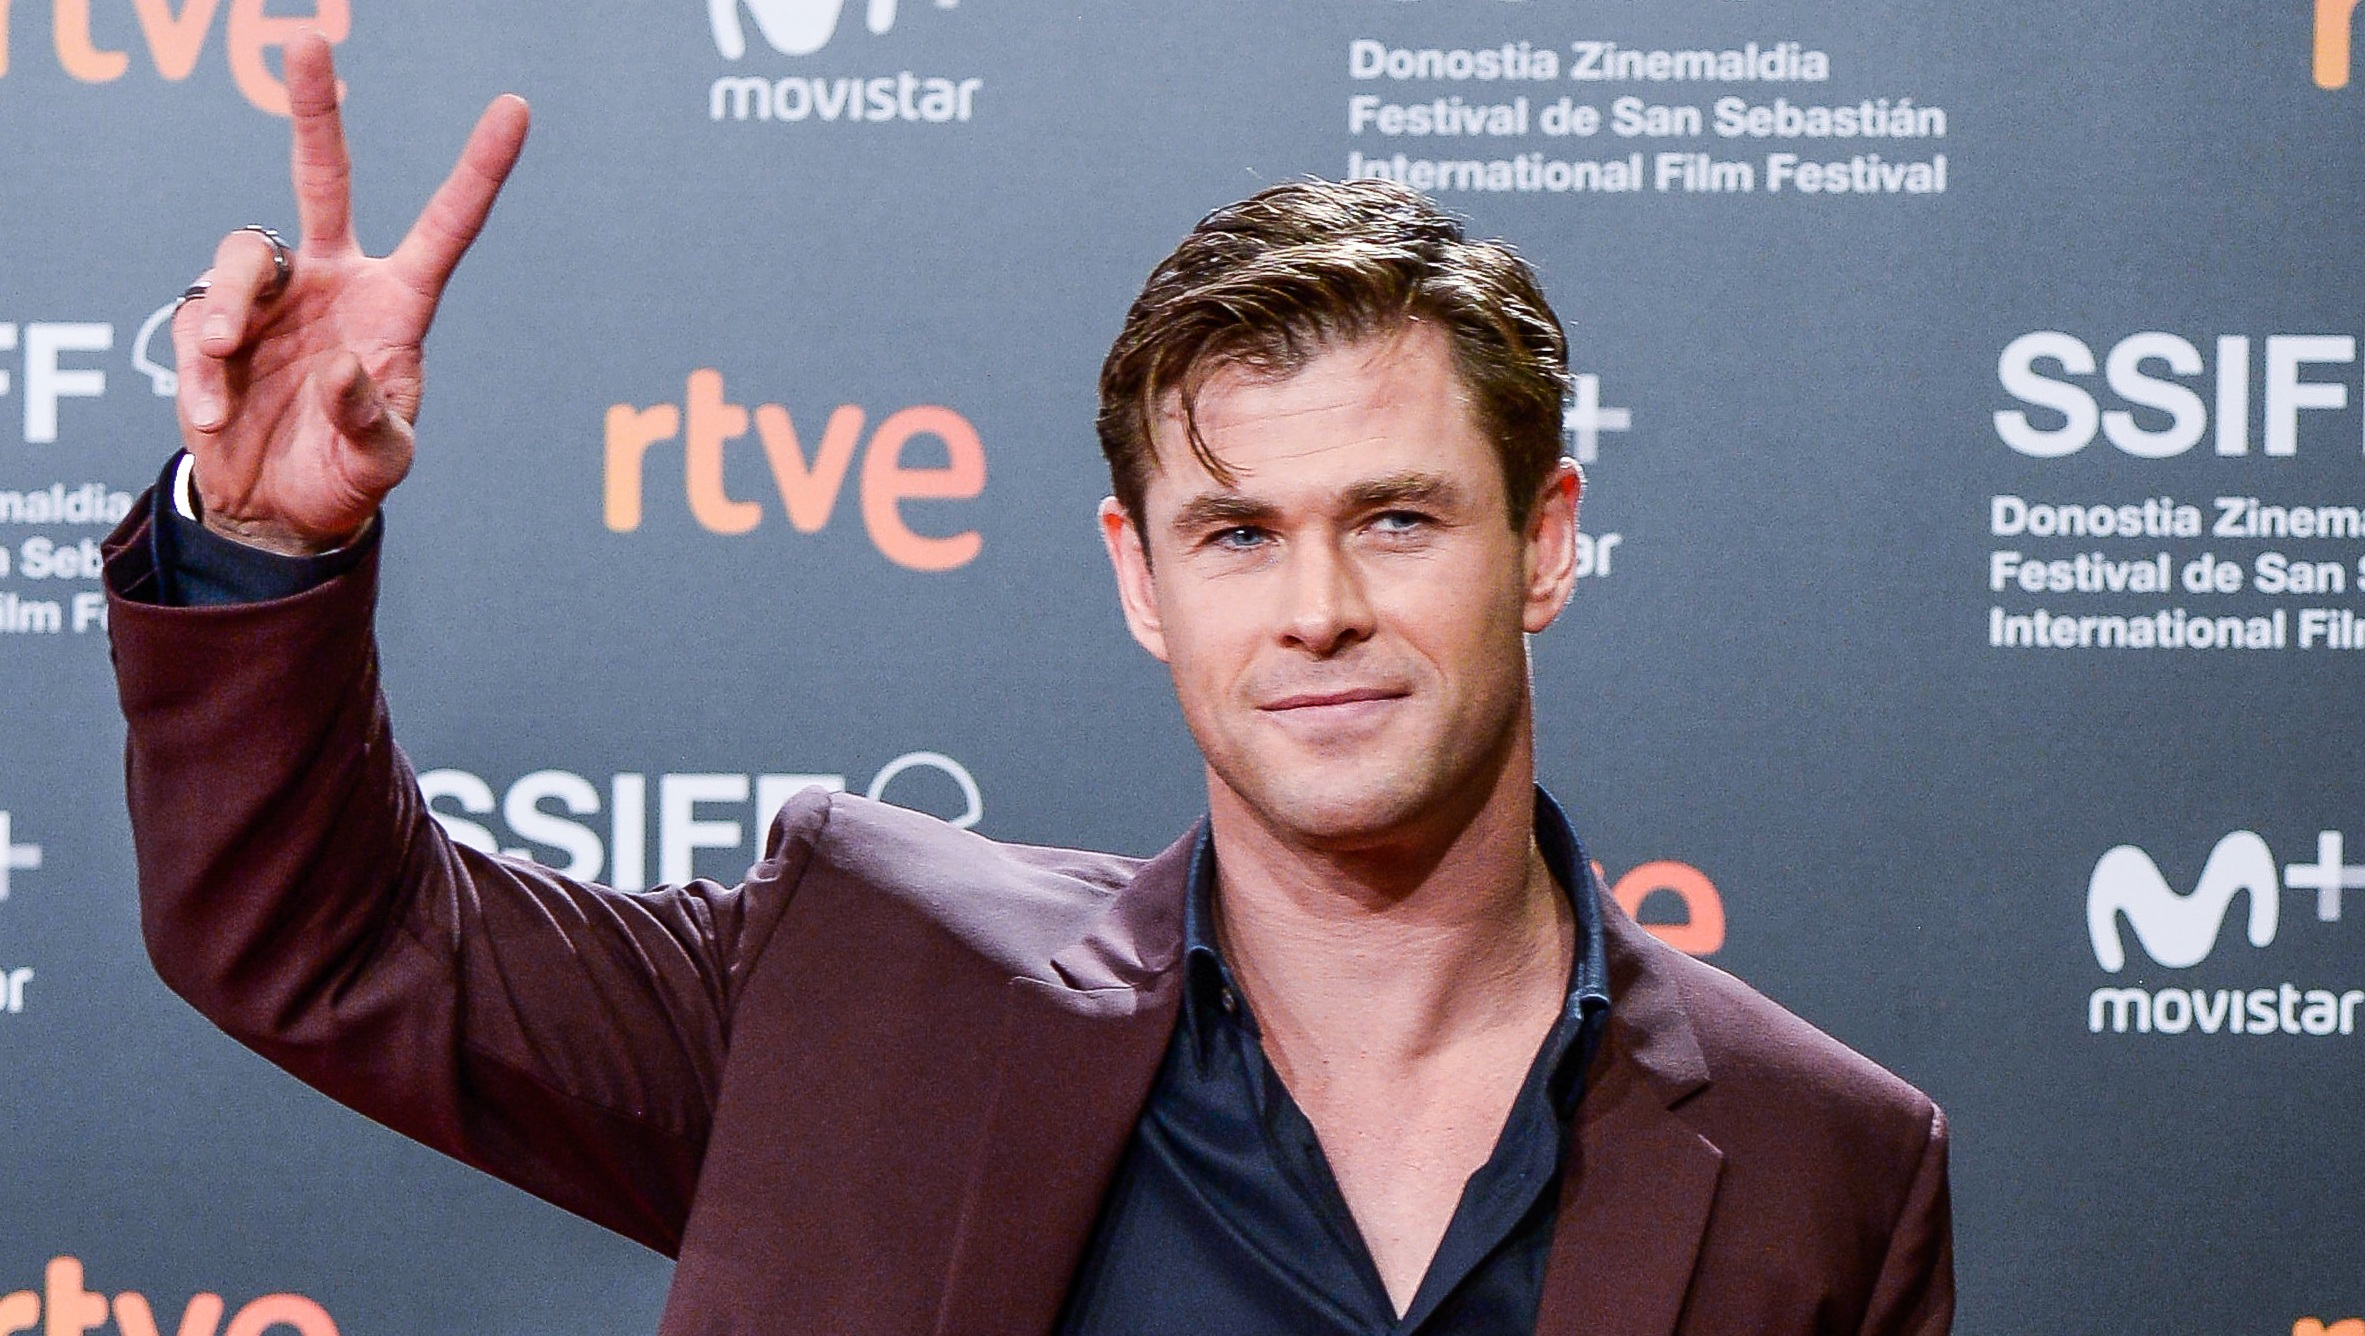 Chris Hemsworth wearing a maroon suit and giving the peace sign